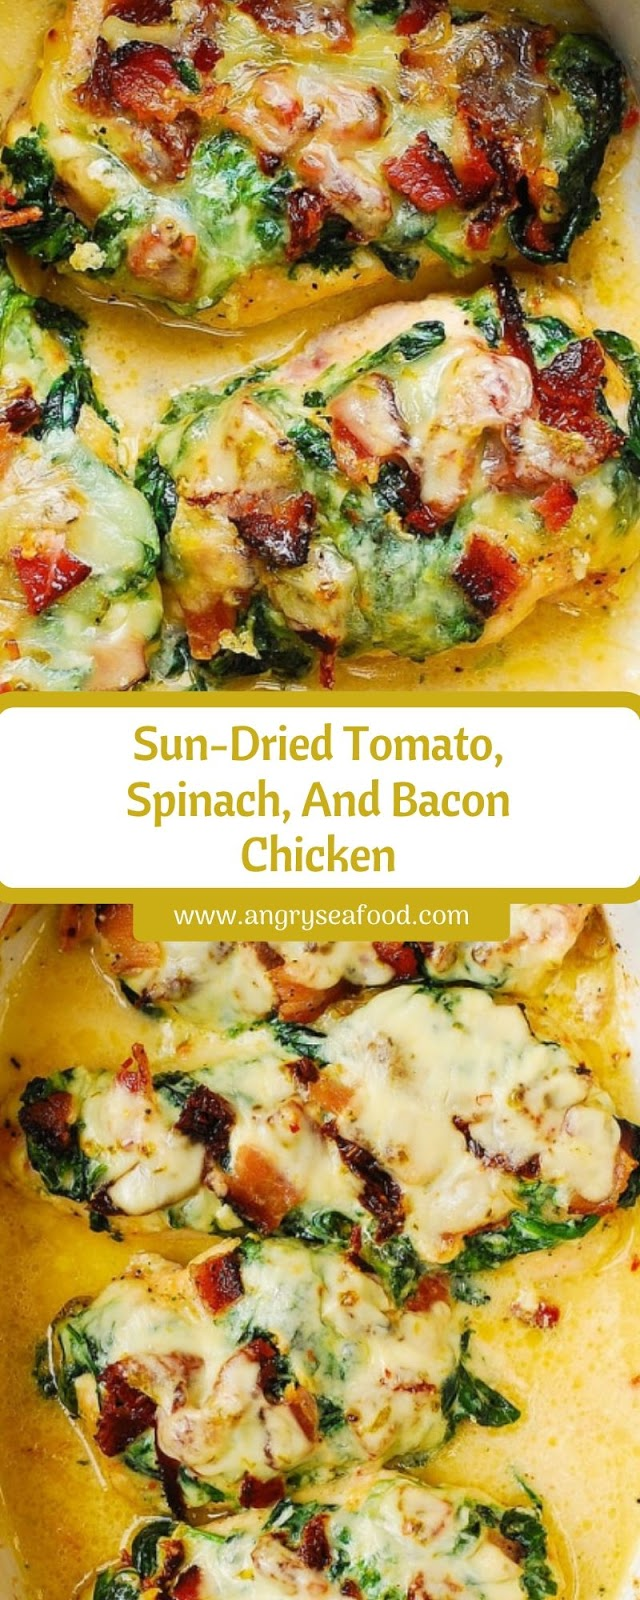 Sun-Dried Tomato, Spinach, And Bacon Chicken